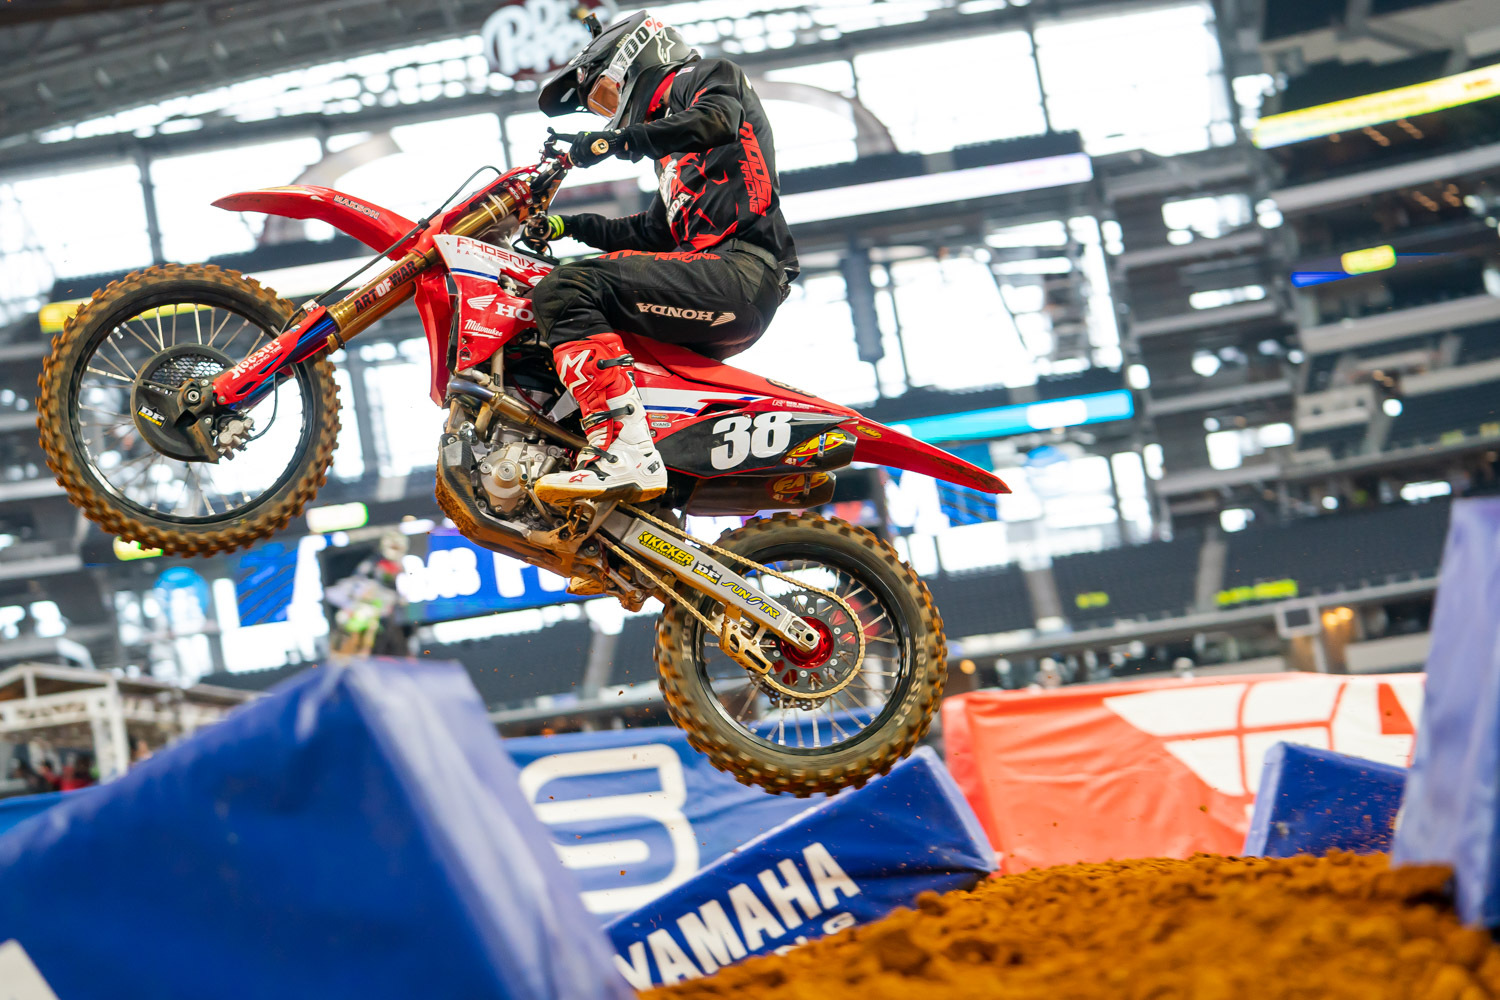 2020-ARLINGTON-SUPERCROSS_KICKSTART_0035